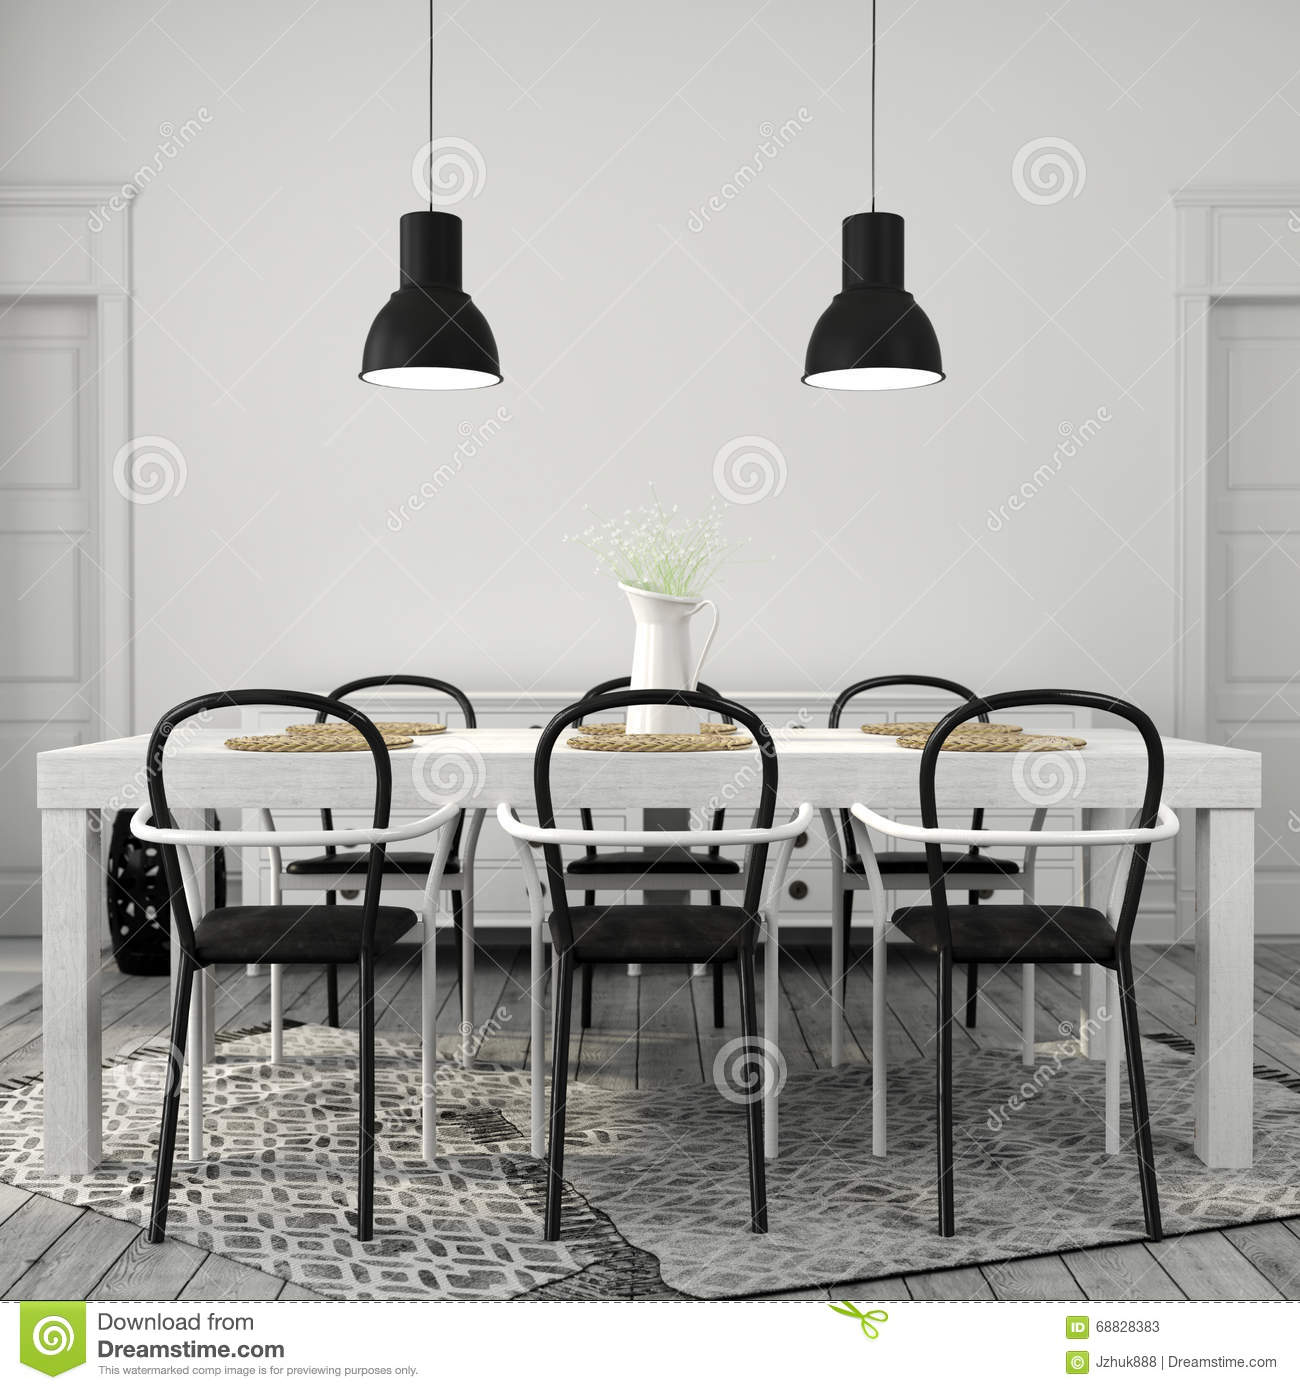 White Dining Table With Black Chairs Stock Photo Image  : white dining table black chairs interior area large 68828383 from www.dreamstime.com size 1300 x 1390 jpeg 169kB